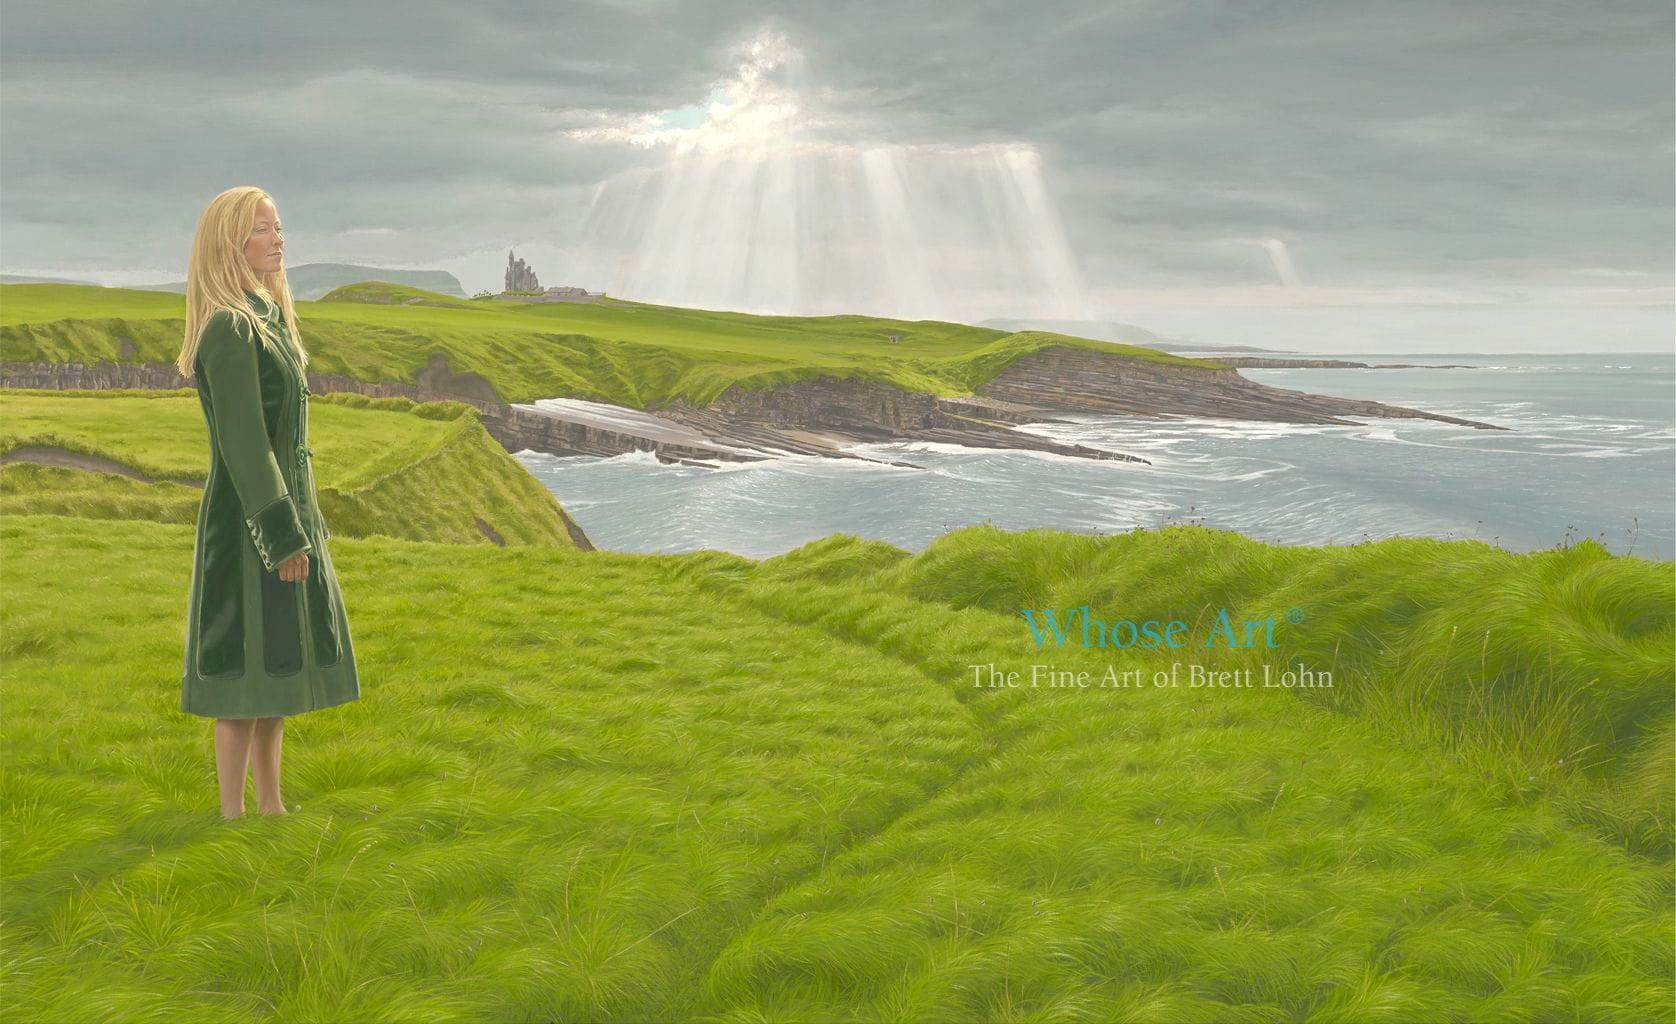 Mystical painting of a lady in a vlevet green coat standing on cliffs overlooking the Atlantic near Classiebawn Castle